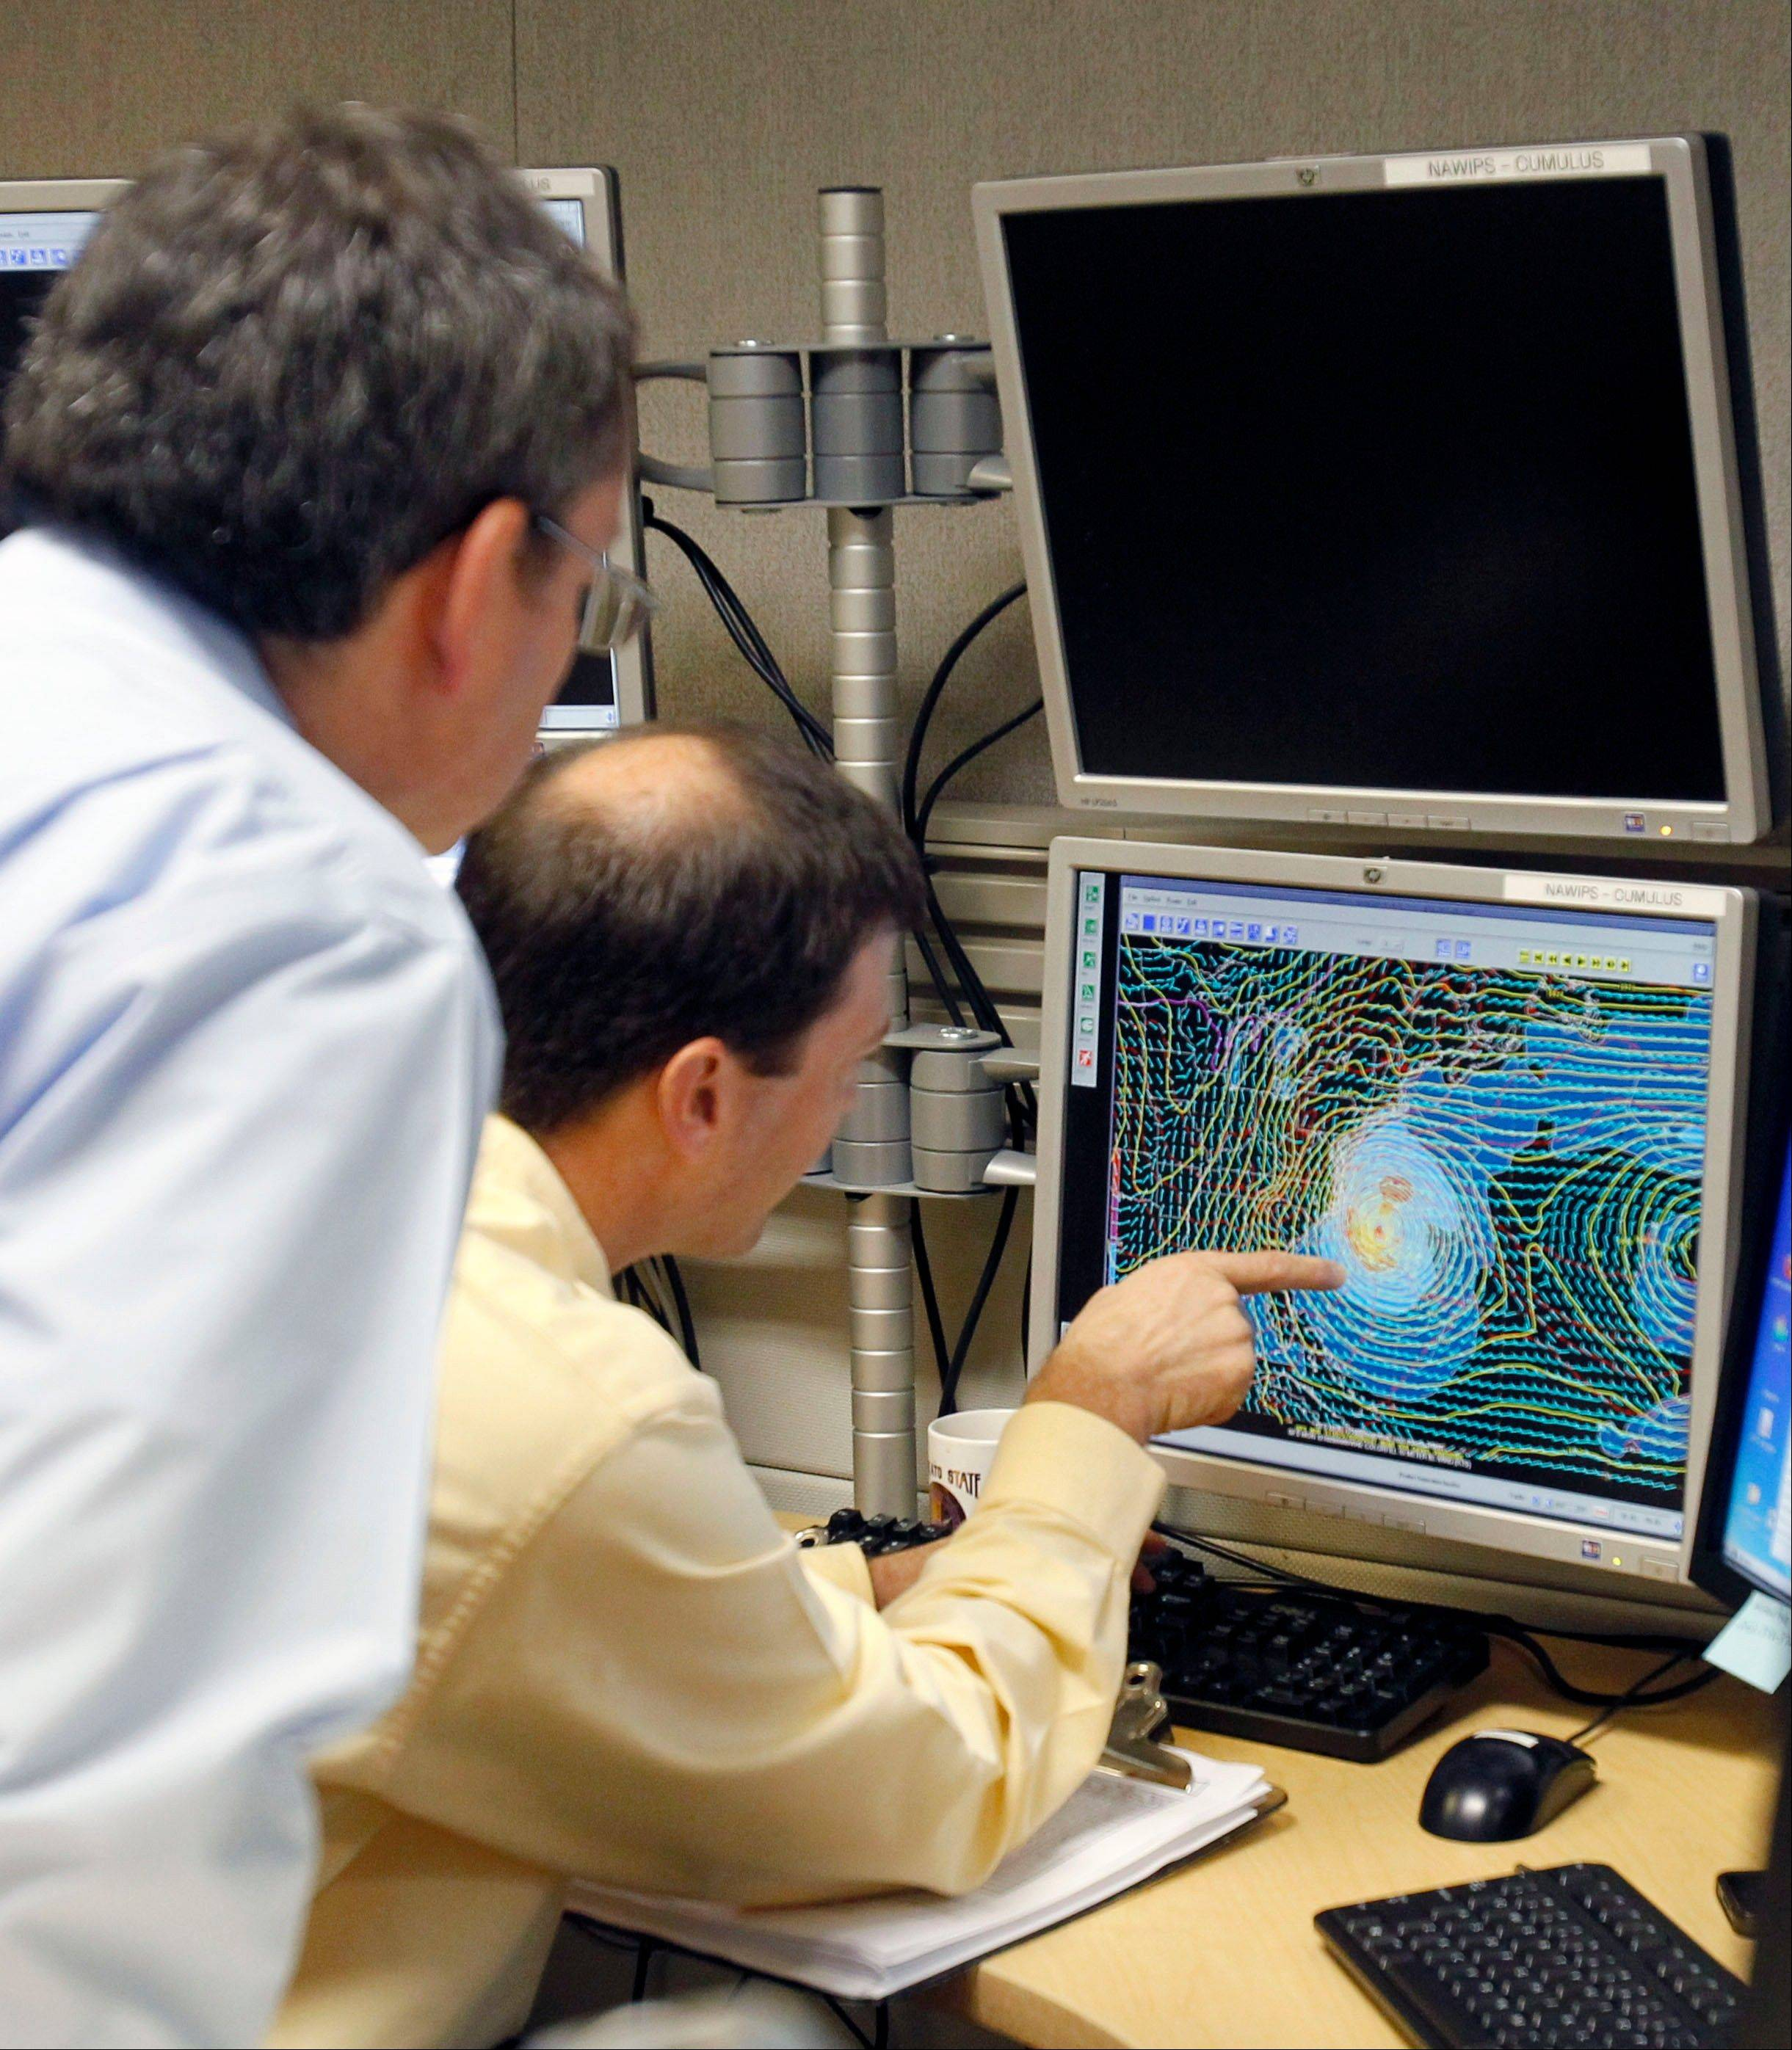 Senior hurricane specialist Dan Brown, right, points to a satellite image of Sandy to James Franklin, chief hurricane specialist, in preparation of the 11:00 EDT advisory at the National Hurricane Center in Miami, Saturday, Oct. 27, 2012. Early Saturday, the storm was about 335 miles southeast of Charleston, S.C.